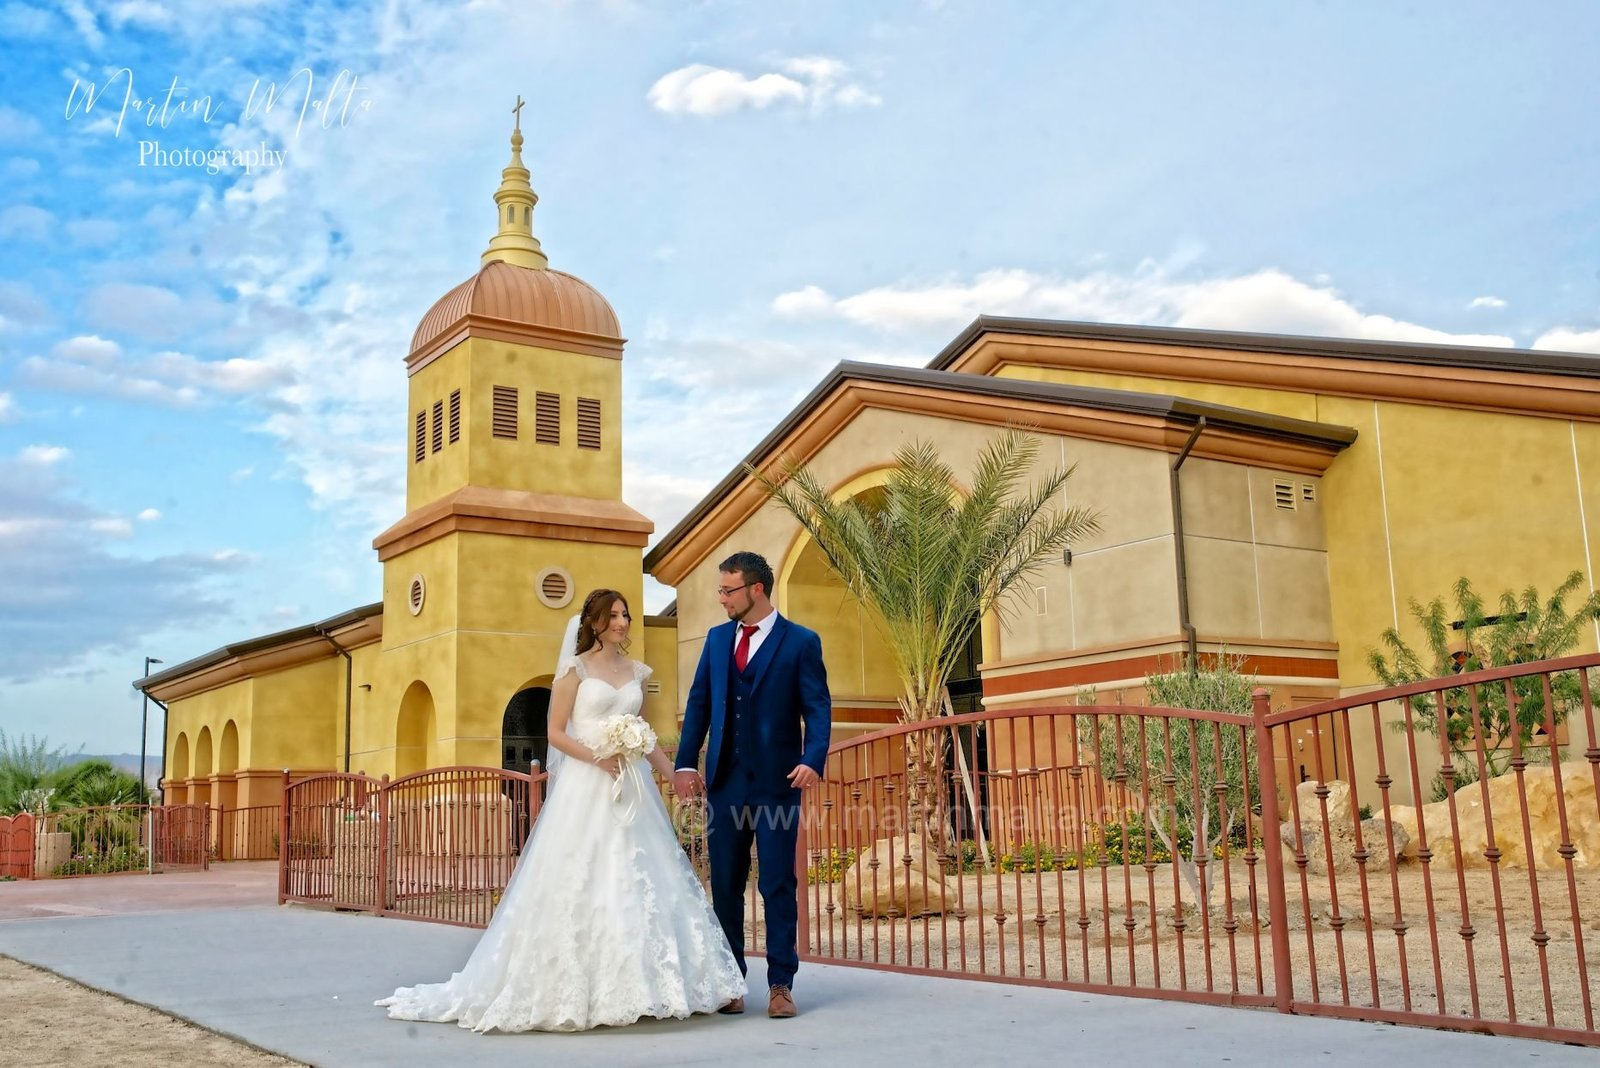 wedding-pictures-indio ca-photographer-rancho escamoles-3